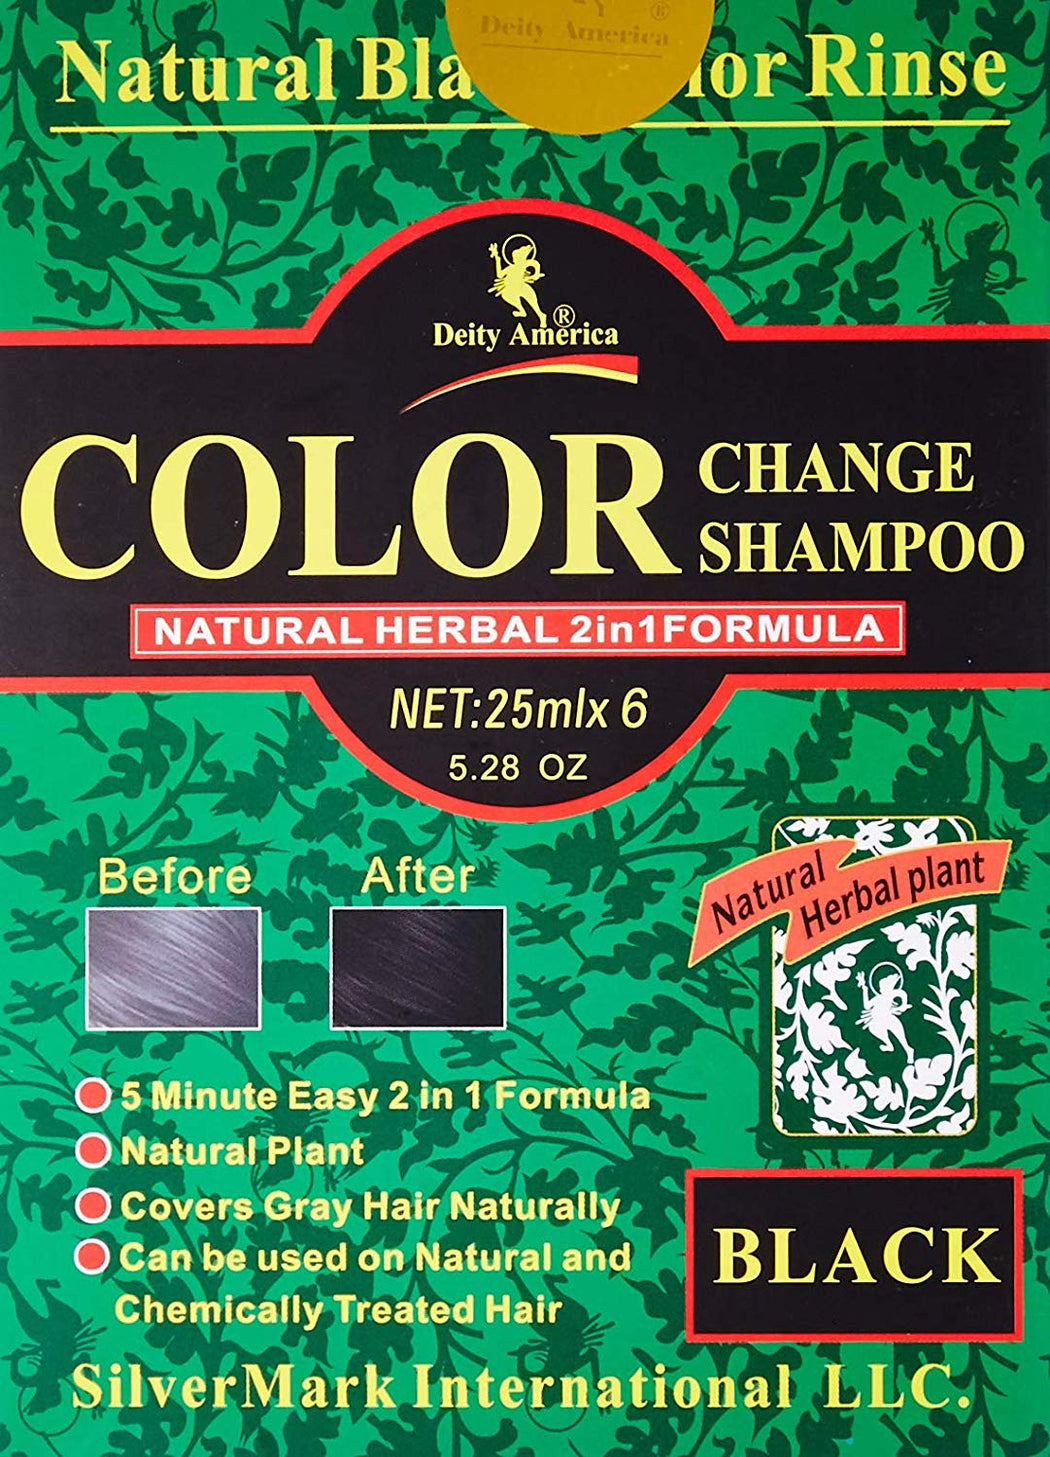 Deity America Colour Change Shampoo